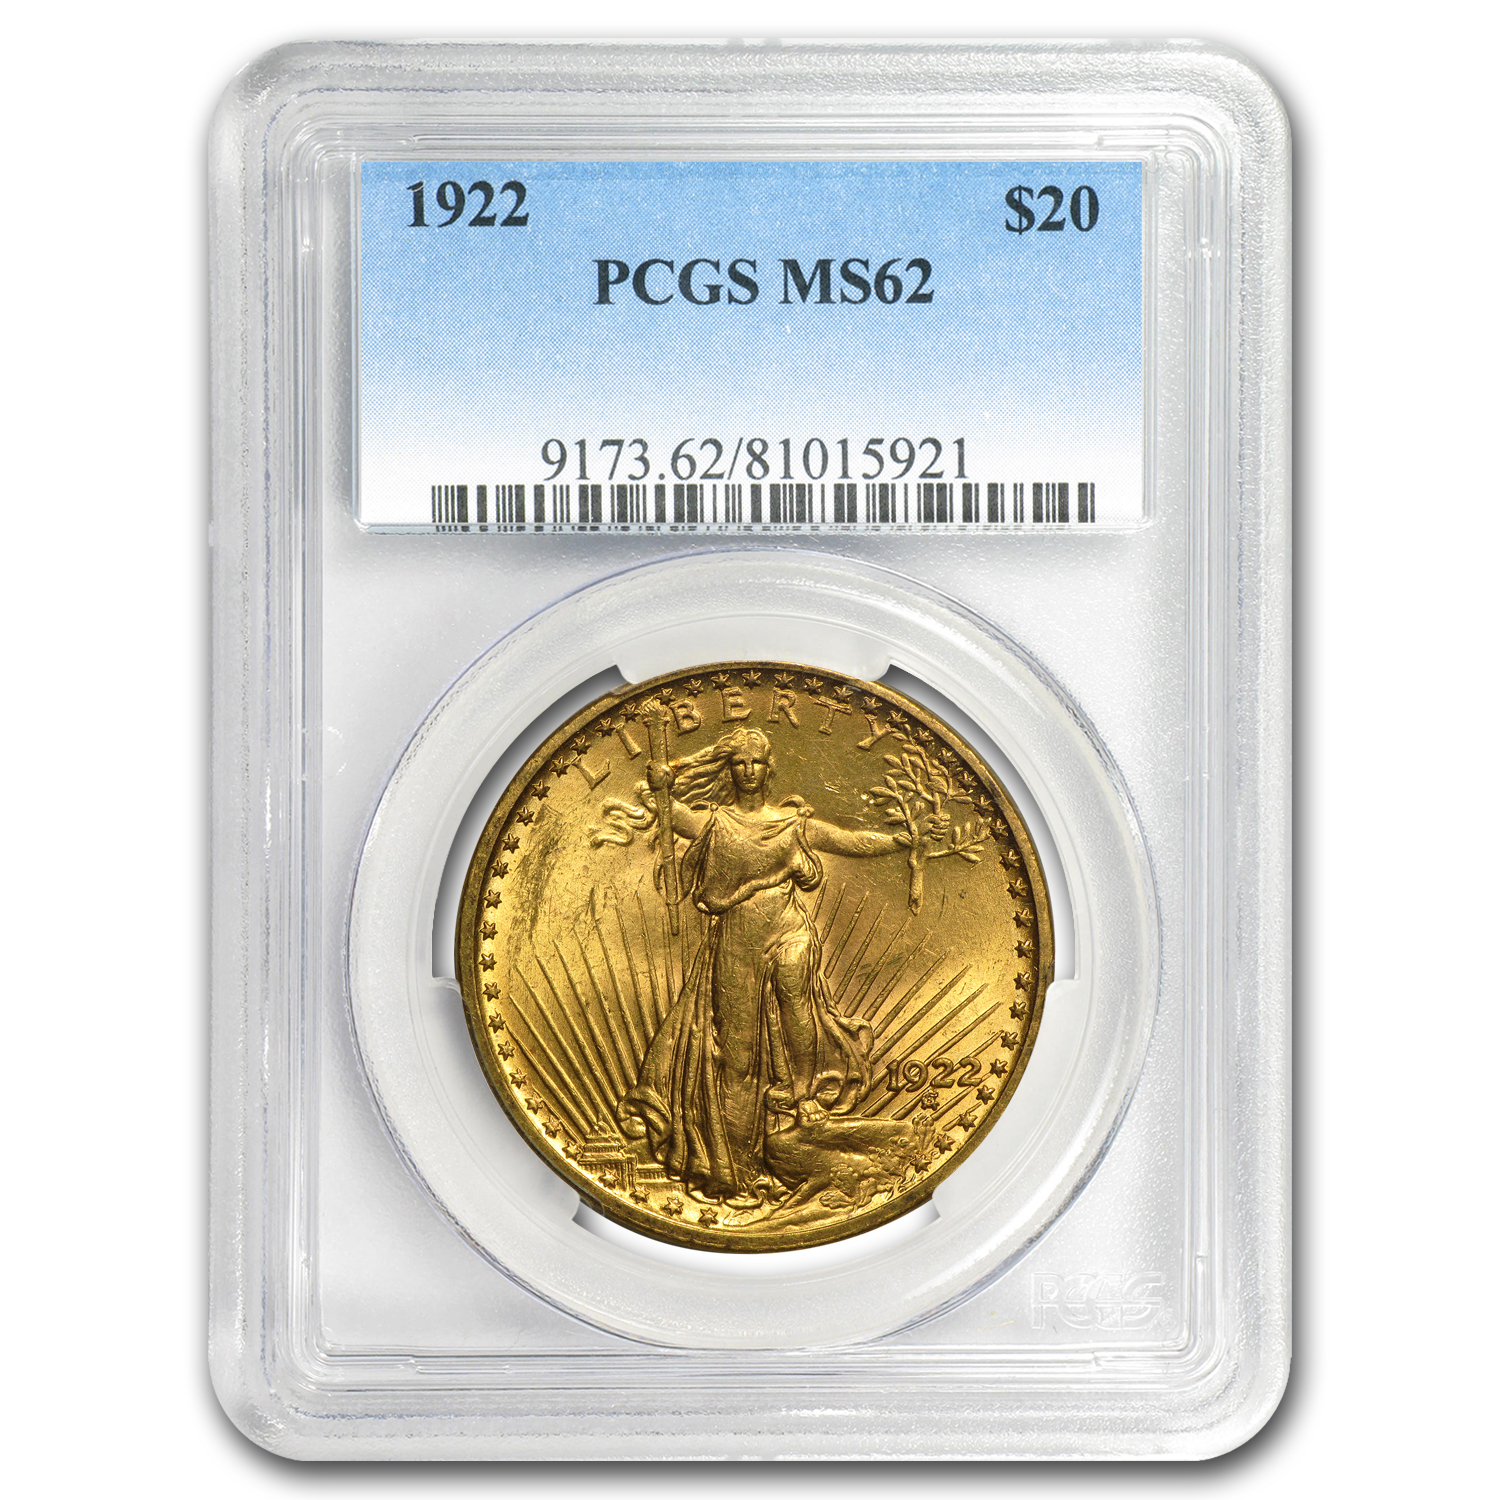 7-Coin $20 Saint-Gaudens Gold Double Eagle Date Set MS-62 PCGS